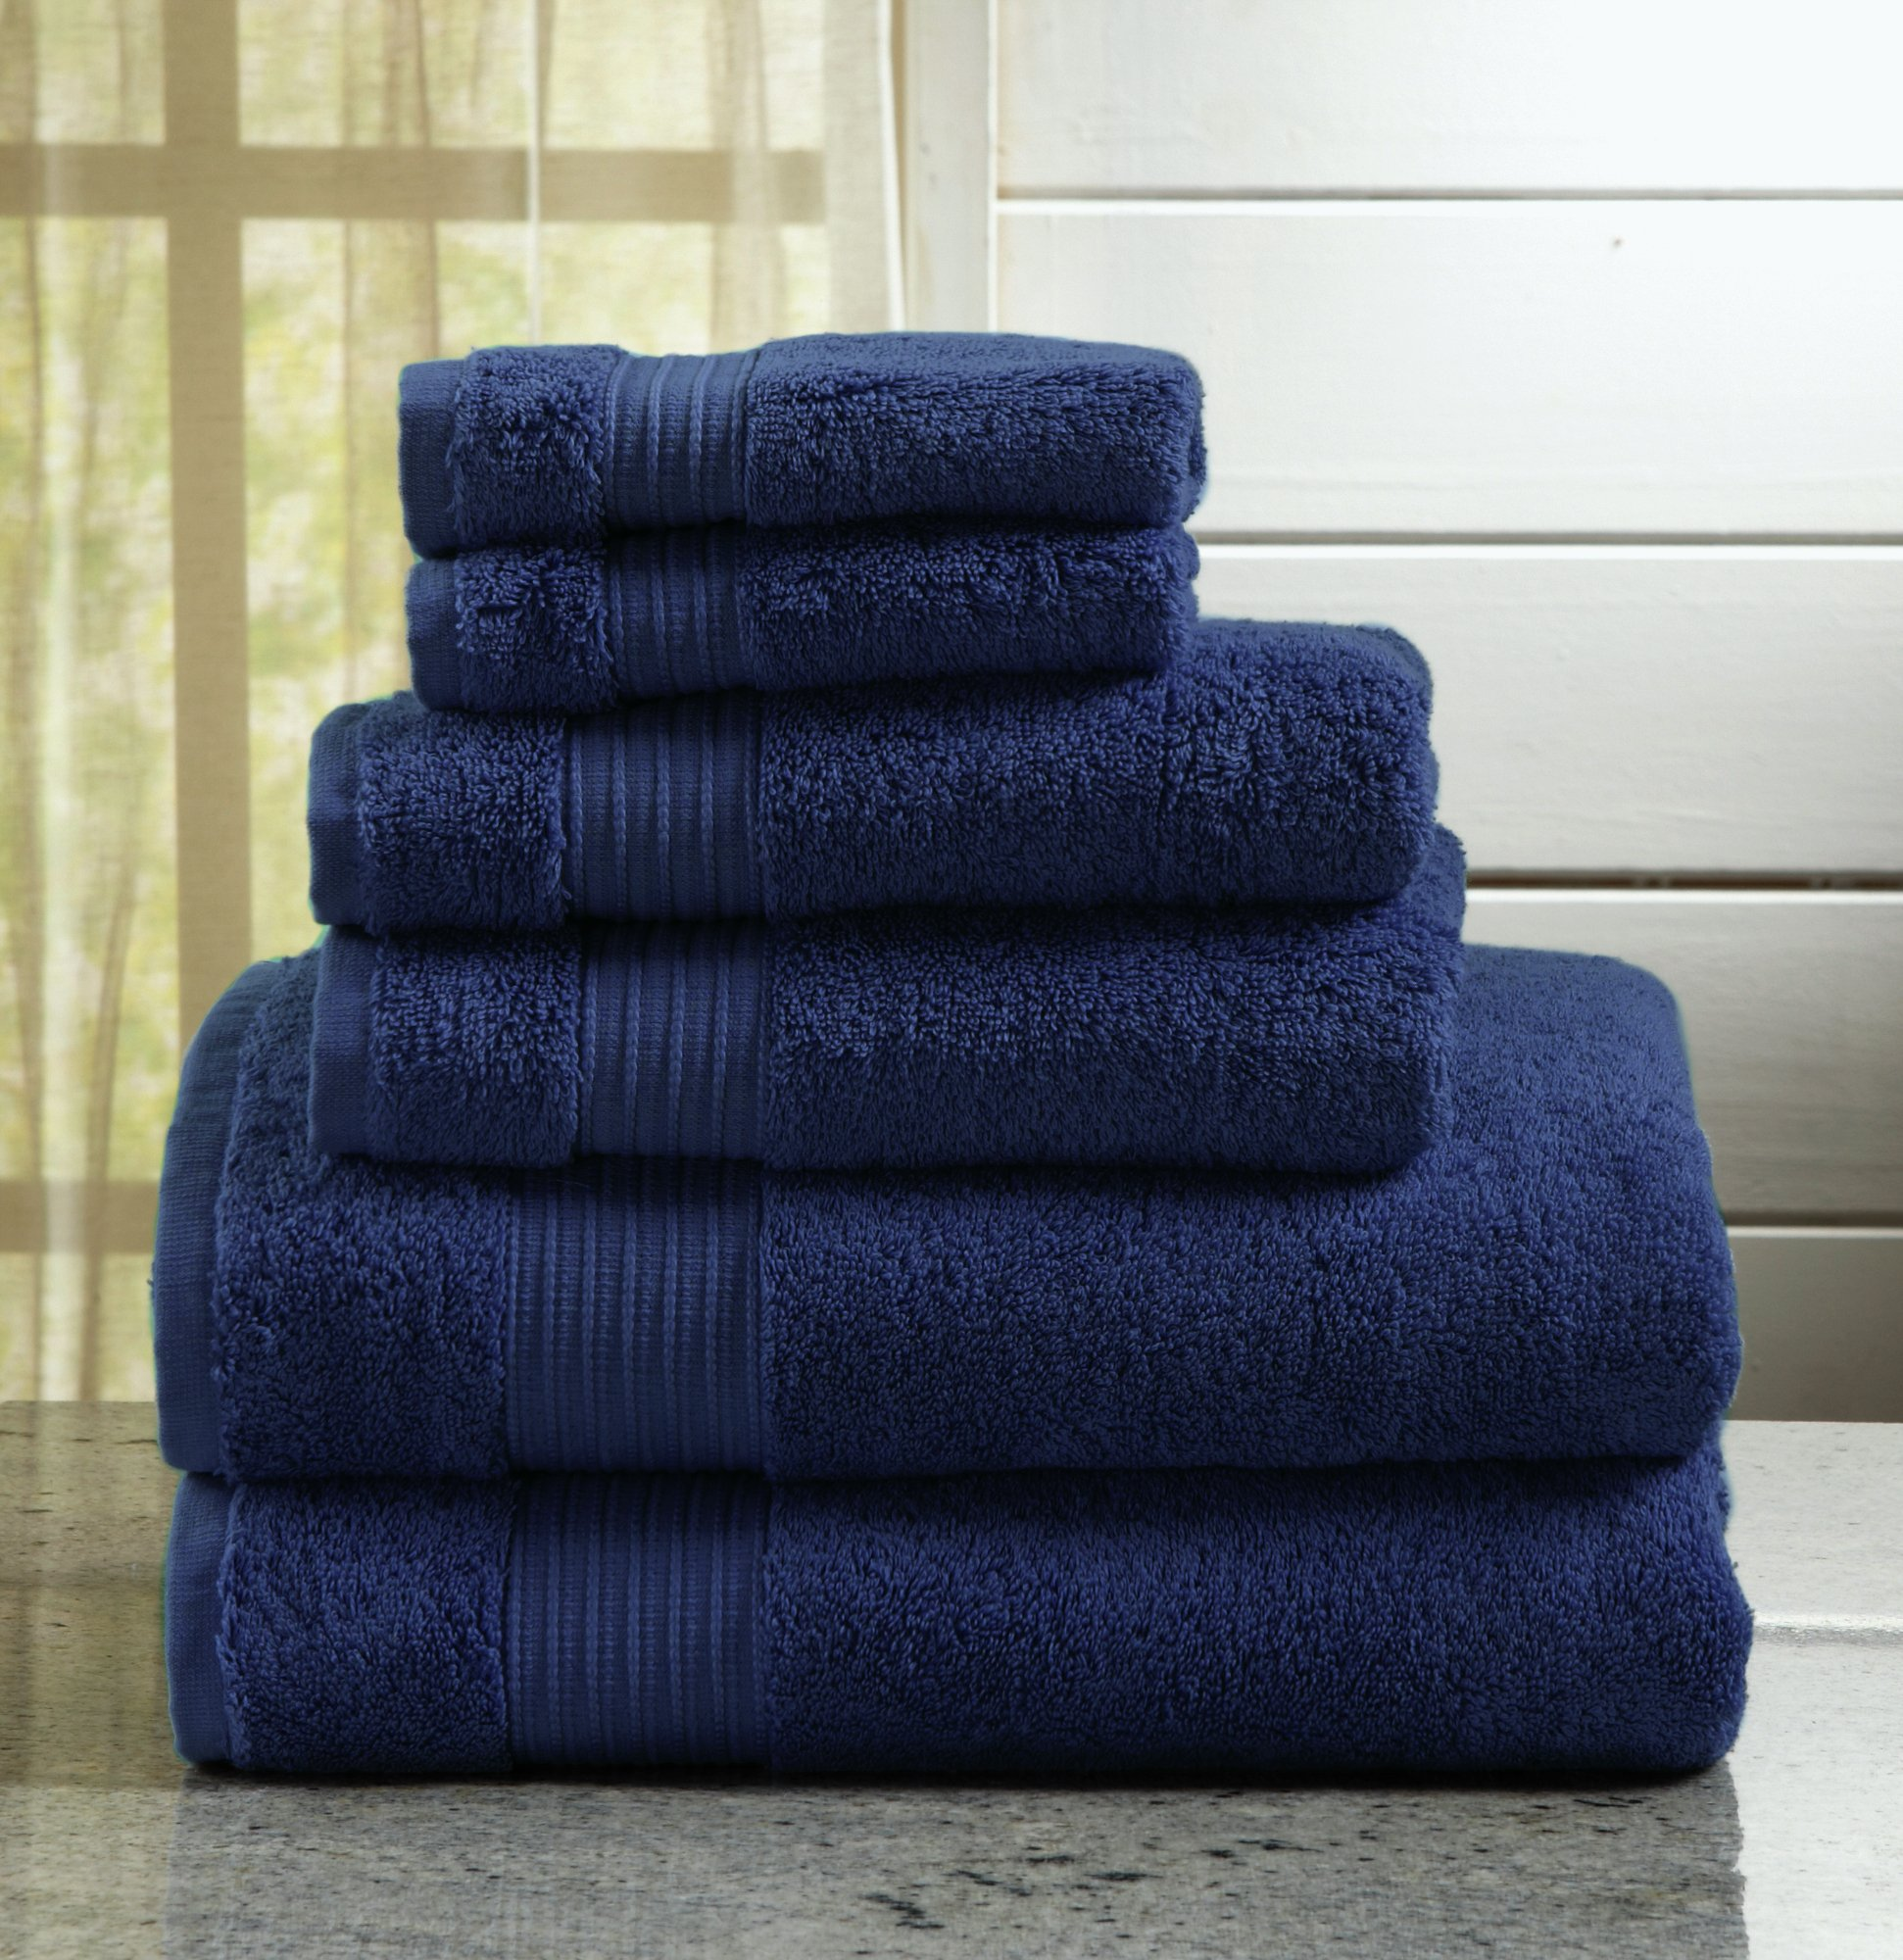 Great Bay Home 6-Piece Luxury Hotel/Spa 100% Turkish Cotton Towel Set, 600 GSM. Includes Bath Towels, Hand Towels and Washcloths. Grace Collection By Brand. (Estate Blue)